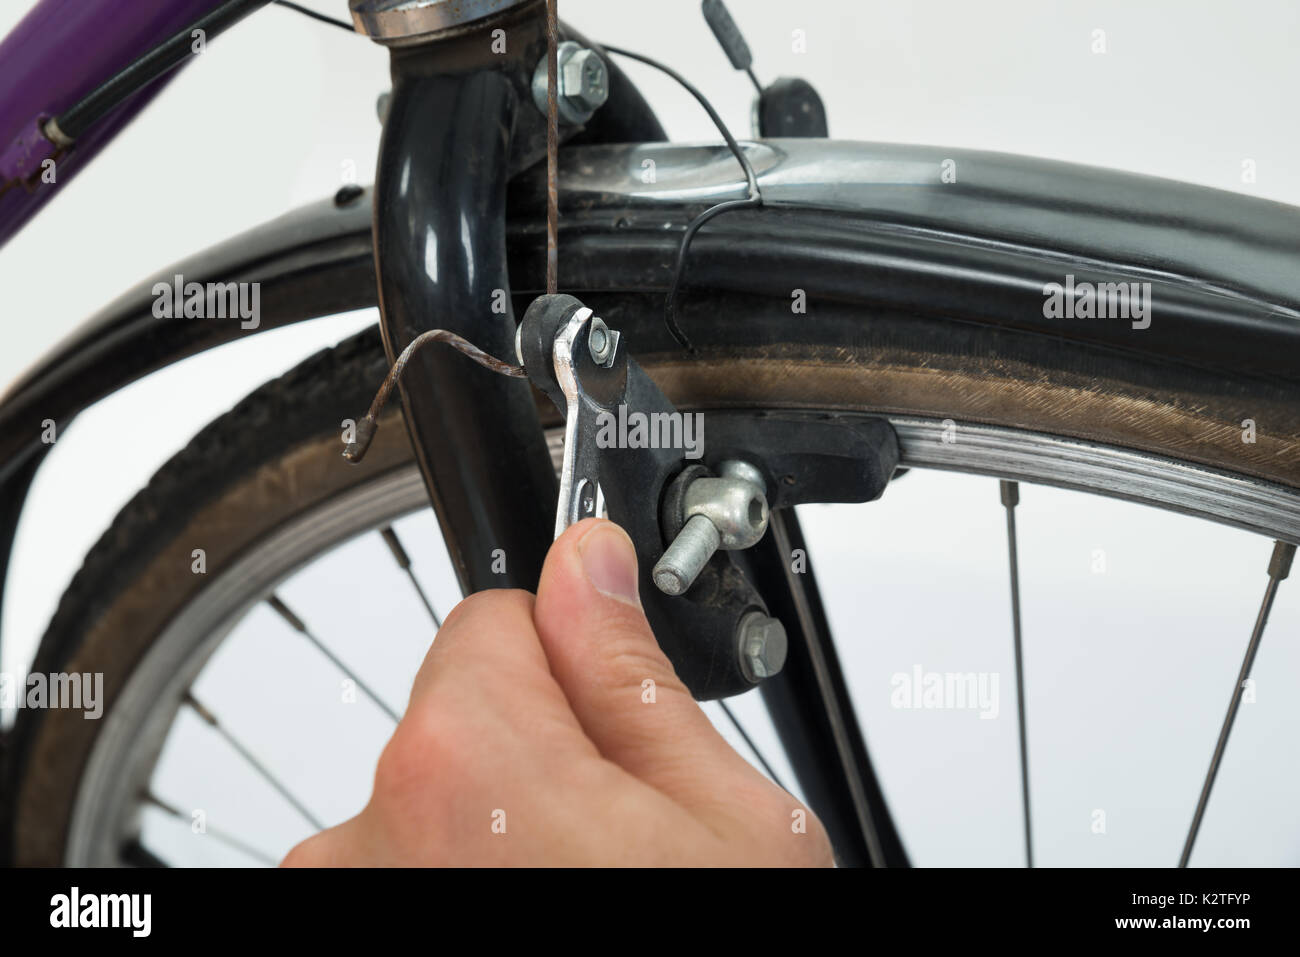 Close-up Of Person Hands Tightening Bolt Of Bicycle Tire With Wrench - Stock Image